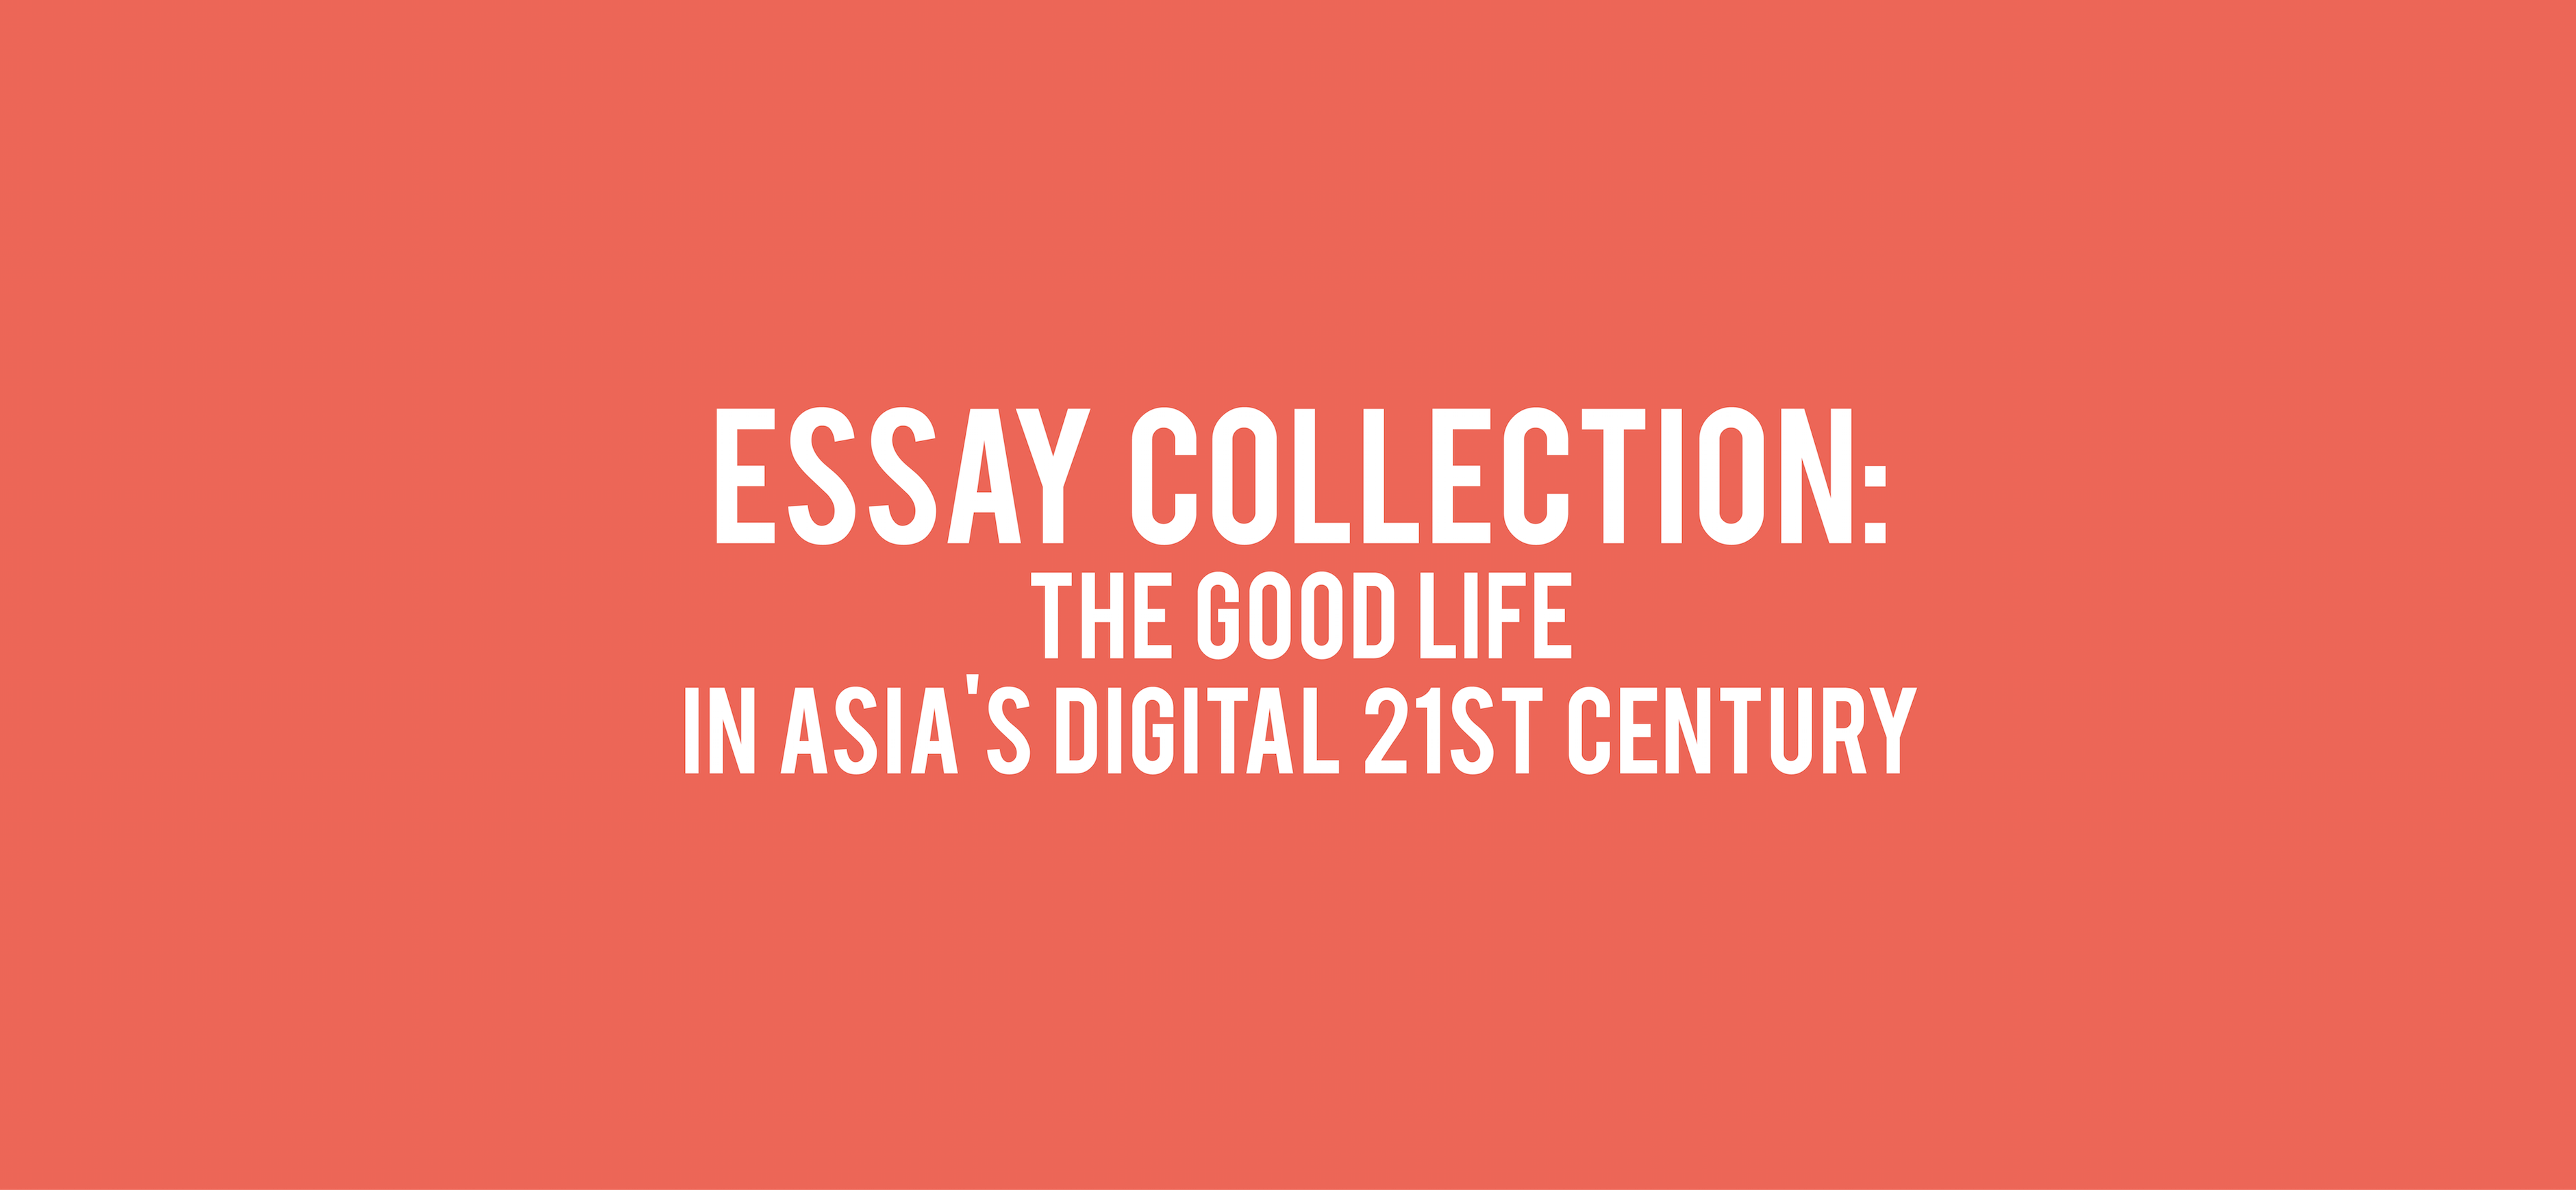 essay good life The good essays life about december 17, 2017 @ 3:29 pm at what point was the civil war inevitable essay essay writing on home safety salawikain tungkol sa.